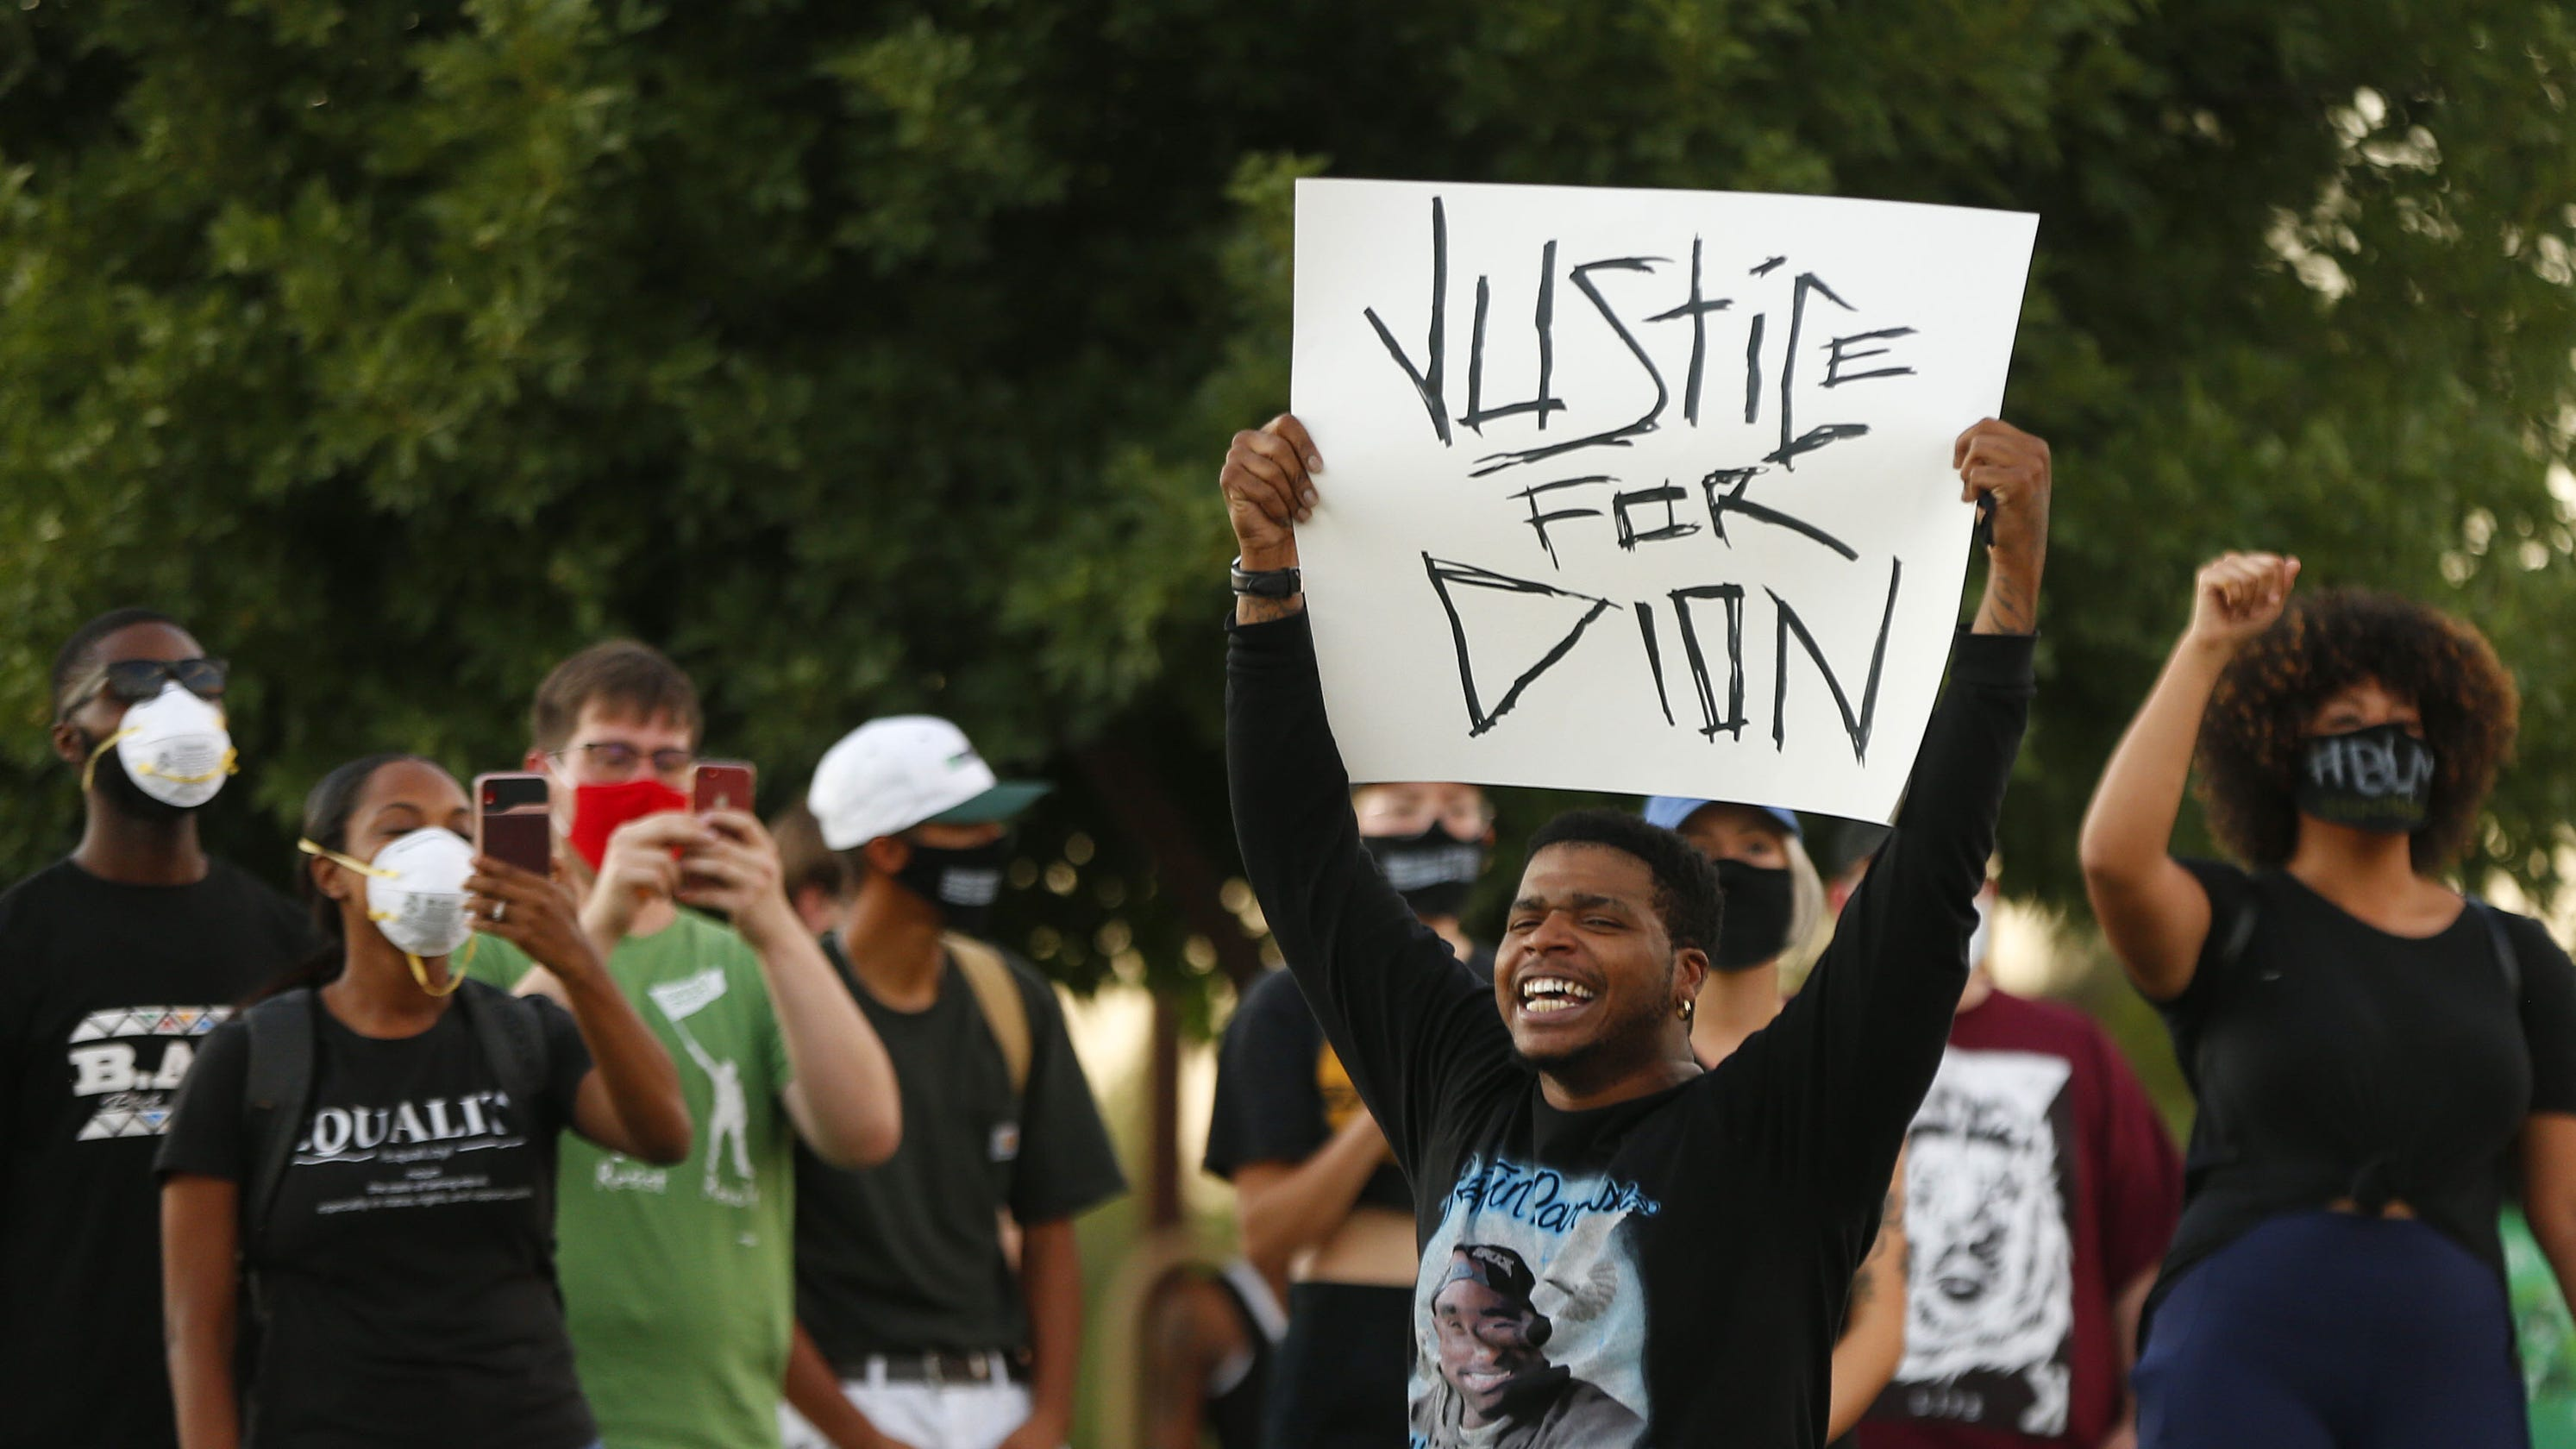 Dion Johnson: What we know and don't know about the fatal Department of Public Safety shooting in Phoenix